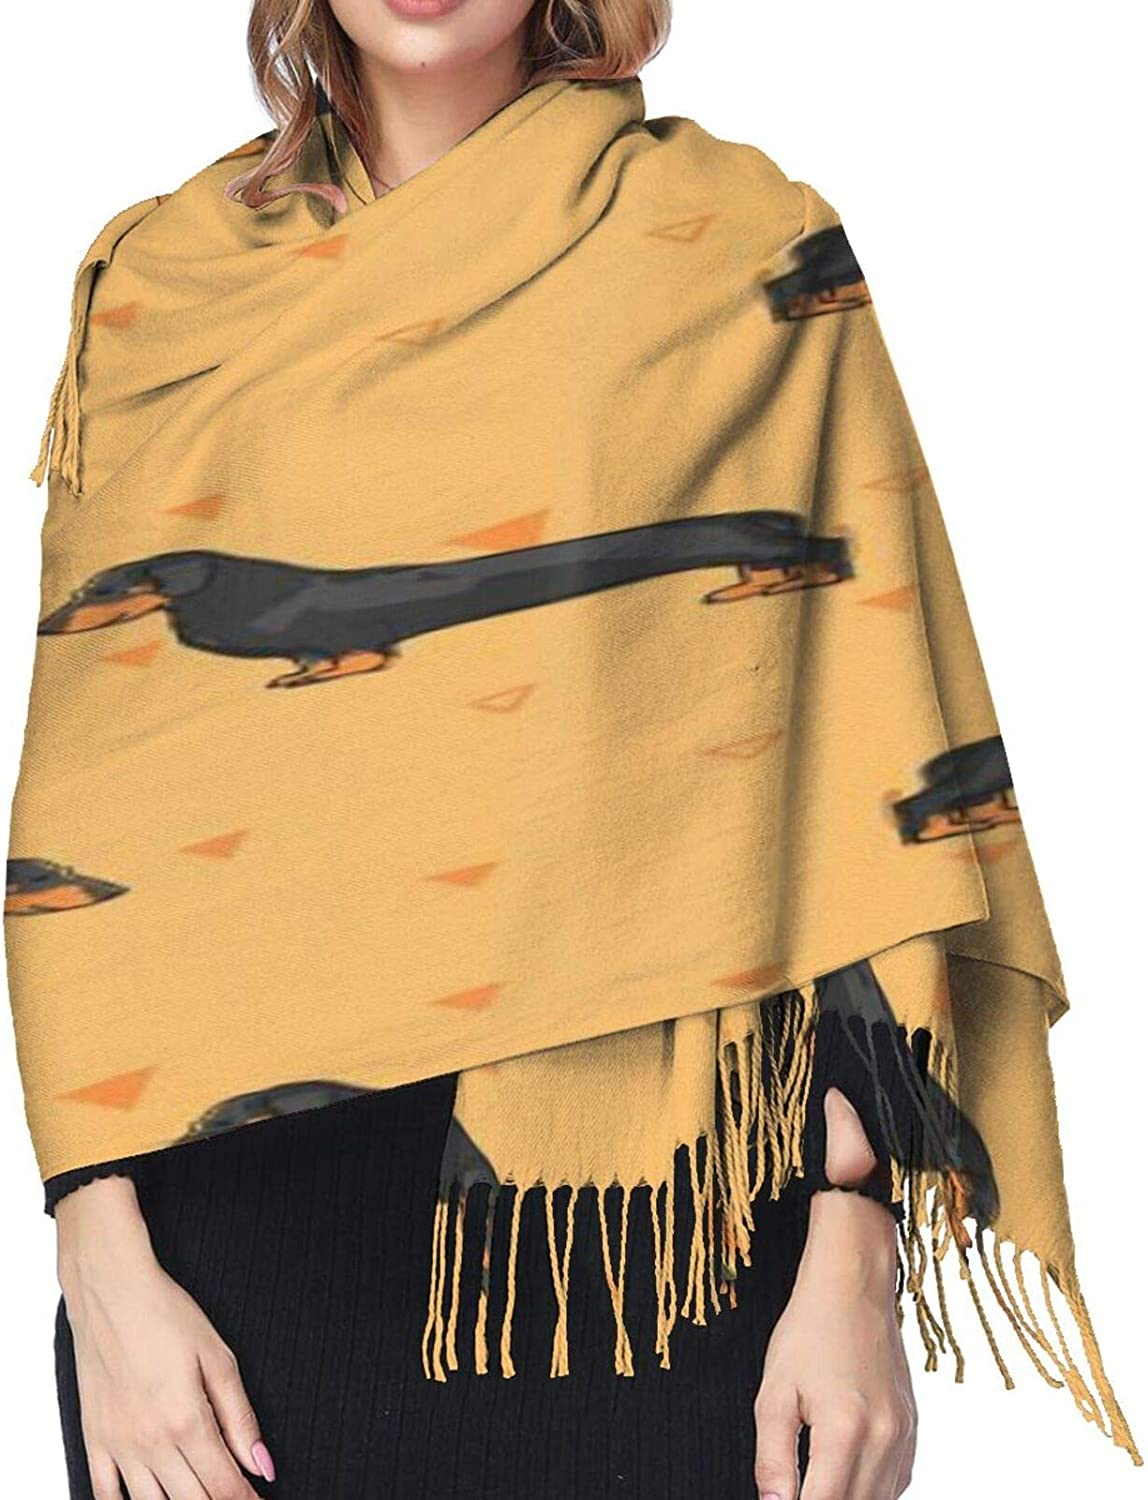 Cashmere fringed scarf seamless Cute dogs winter extra large scarf